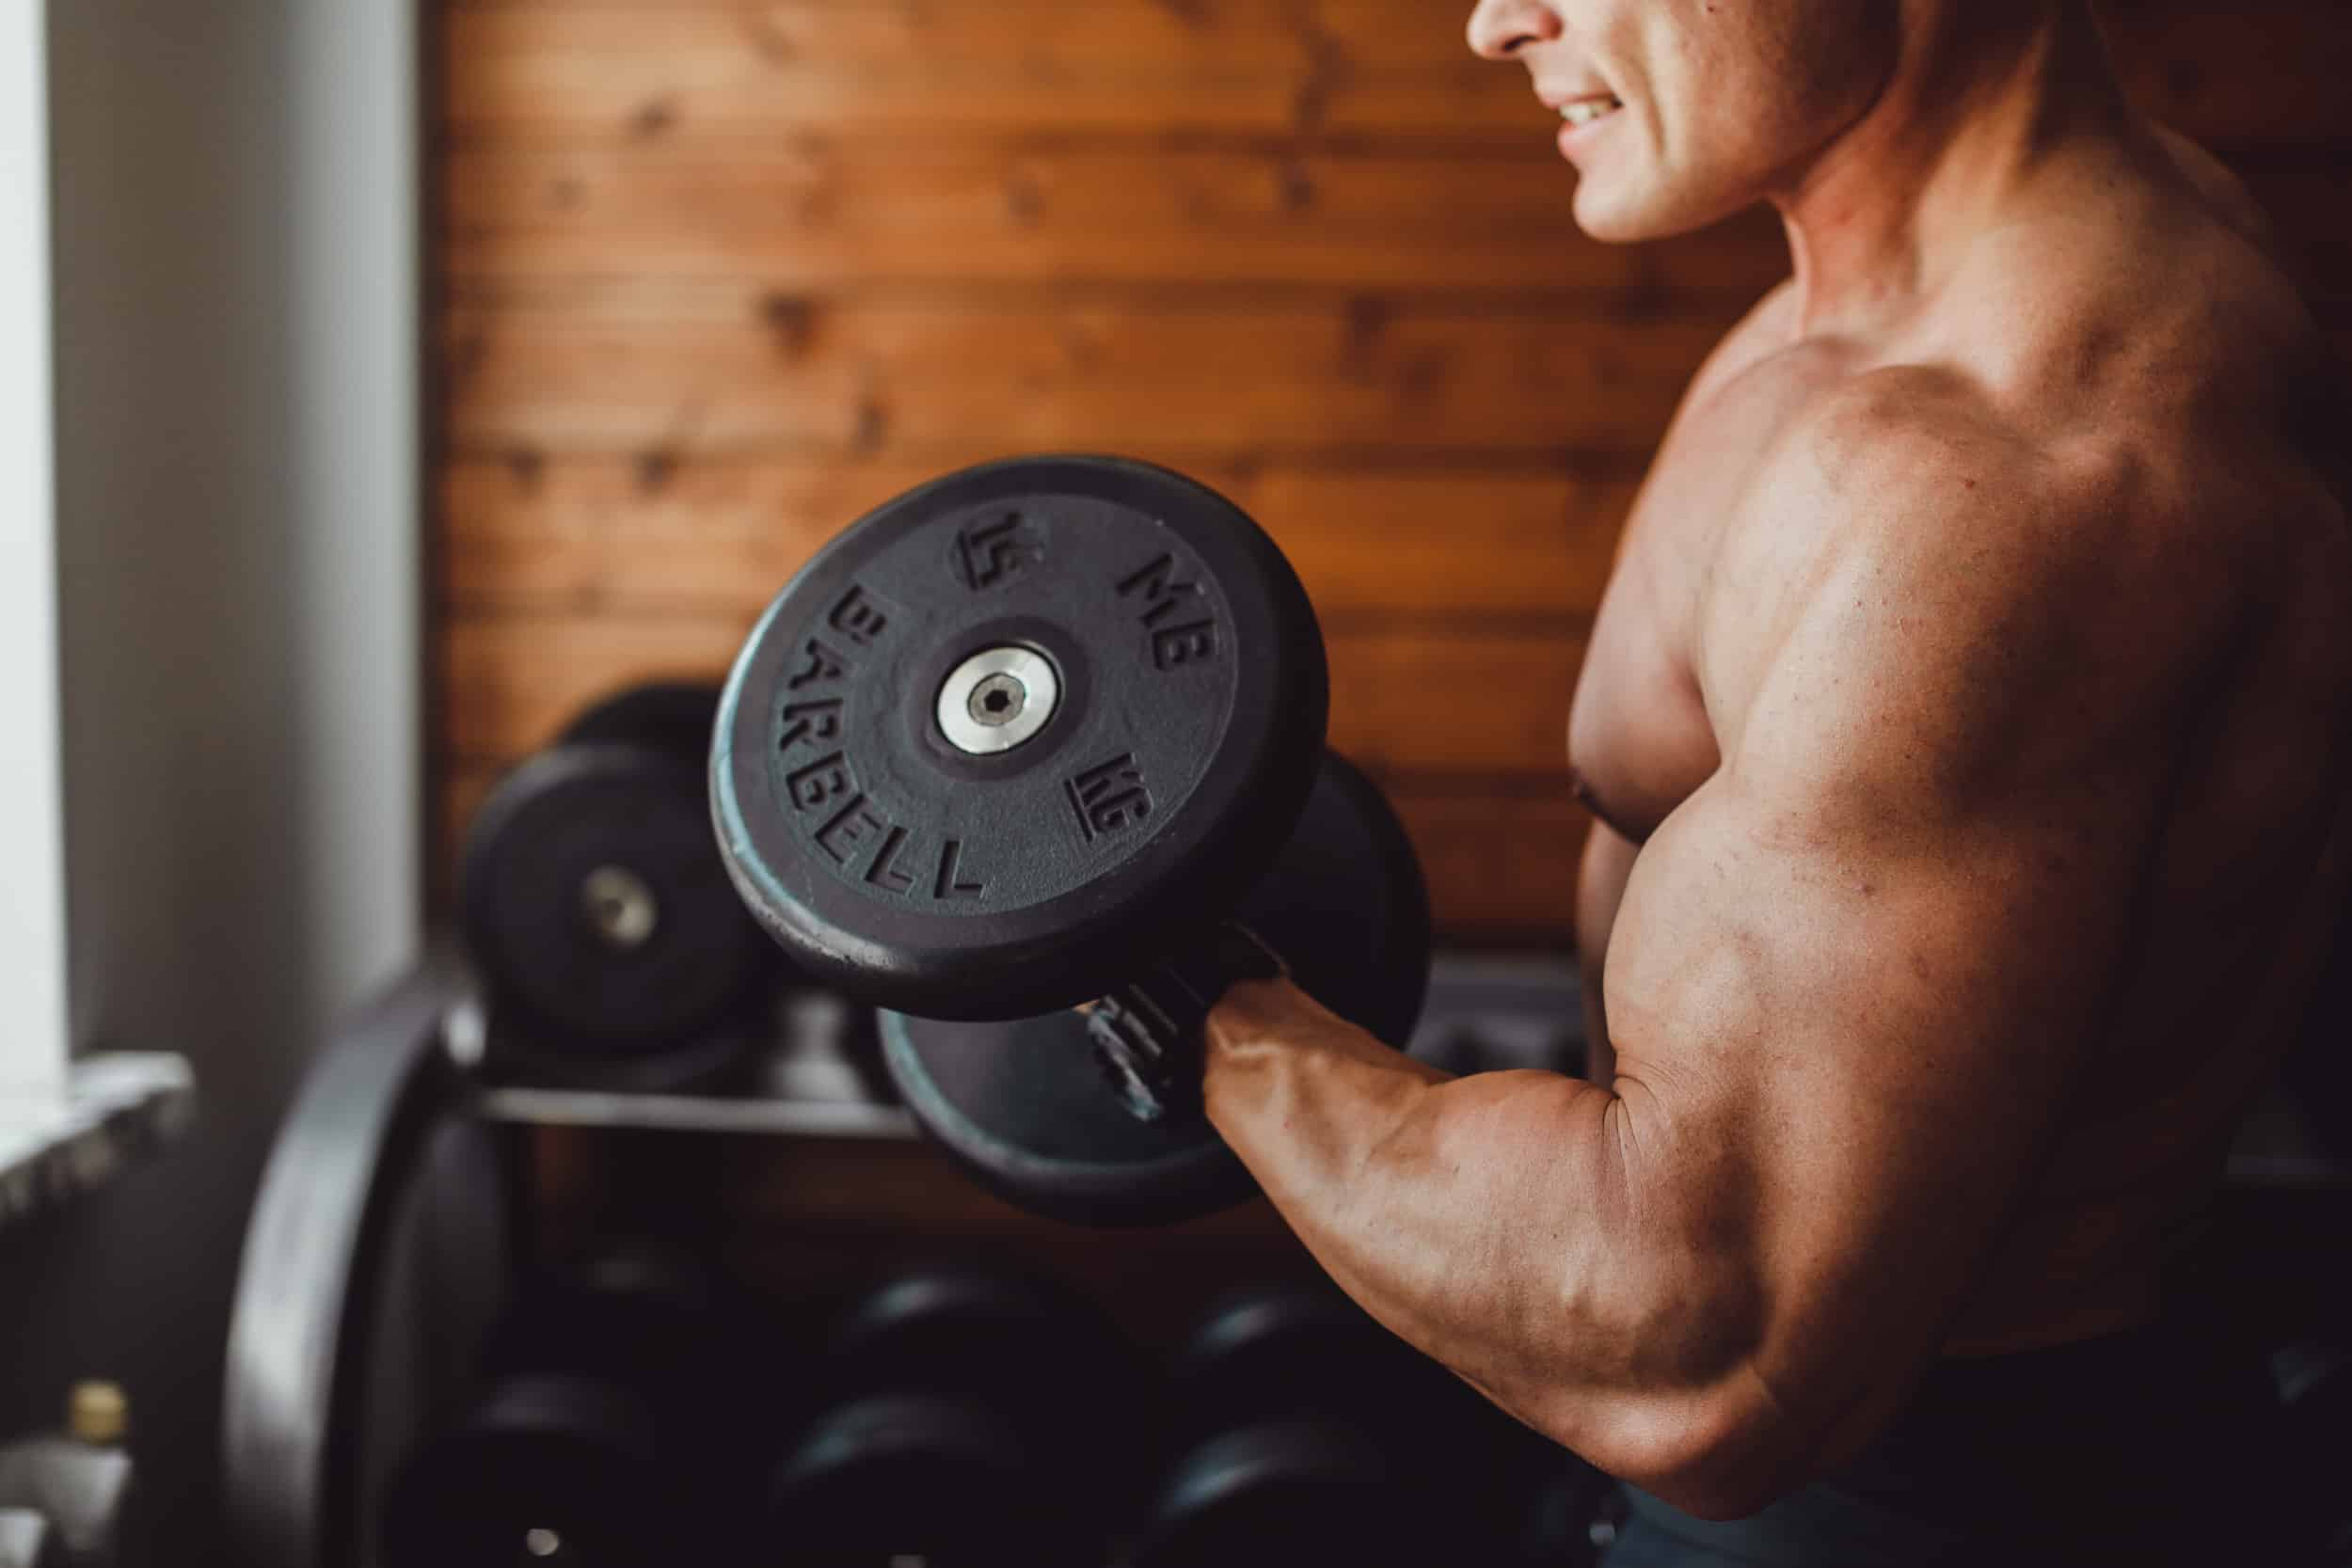 best home bicep workout